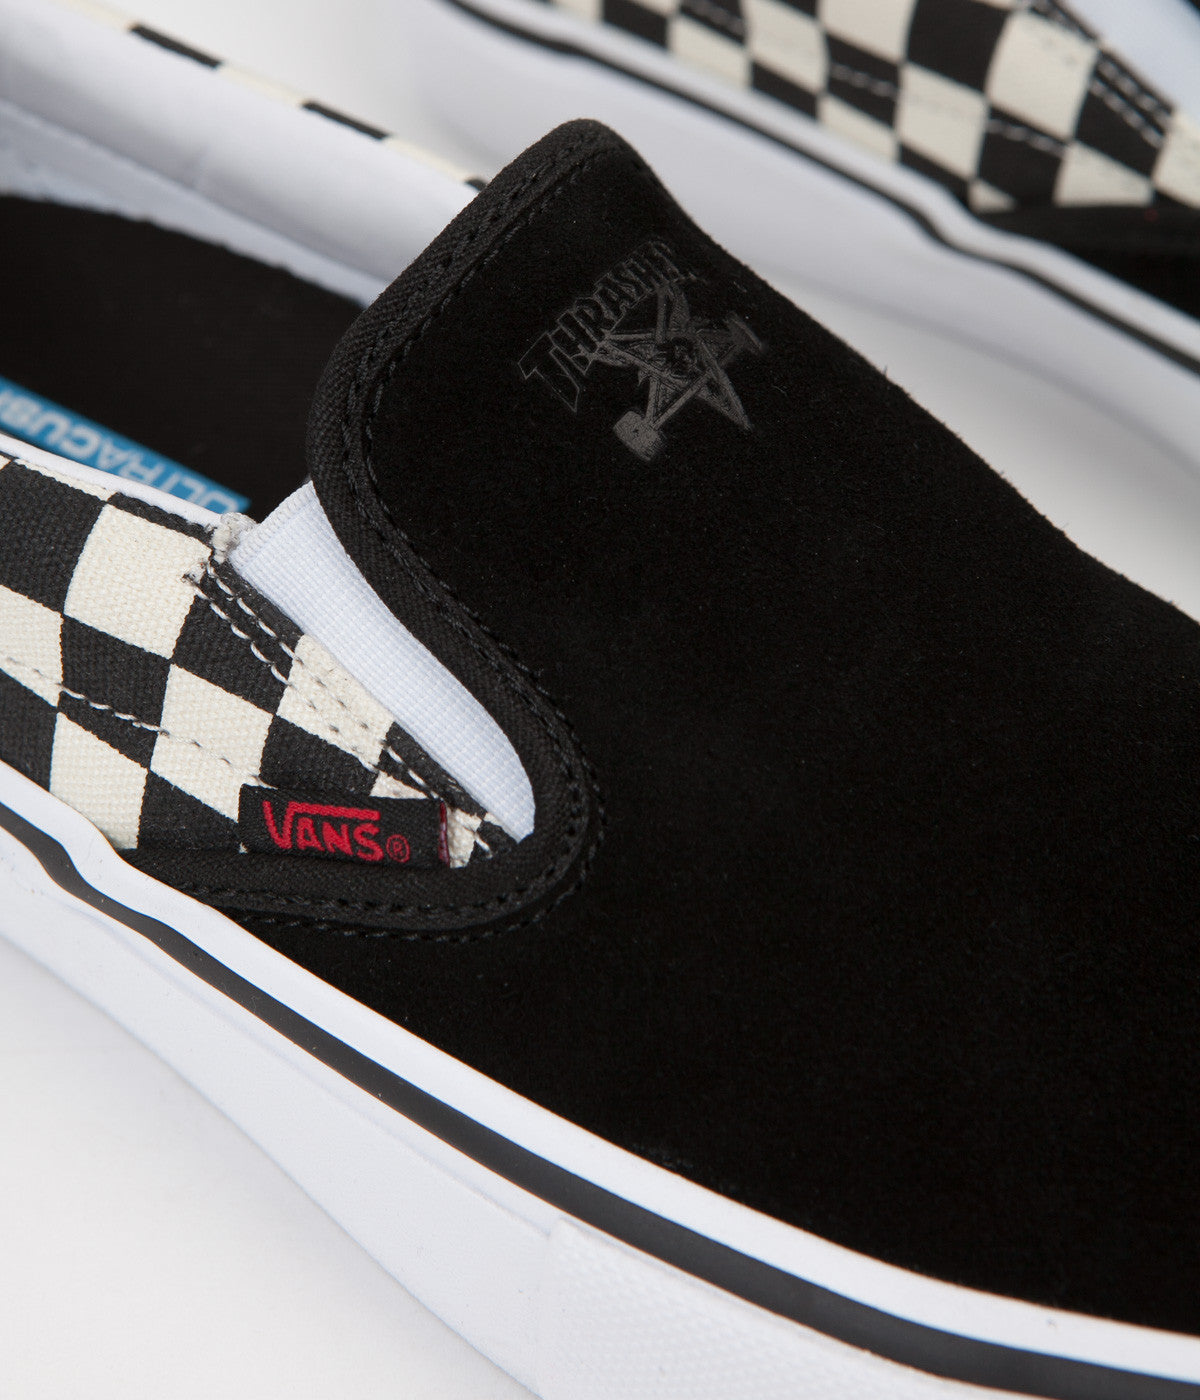 Vans x Thrasher Slip On Pro Shoes - Black / Checkerboard